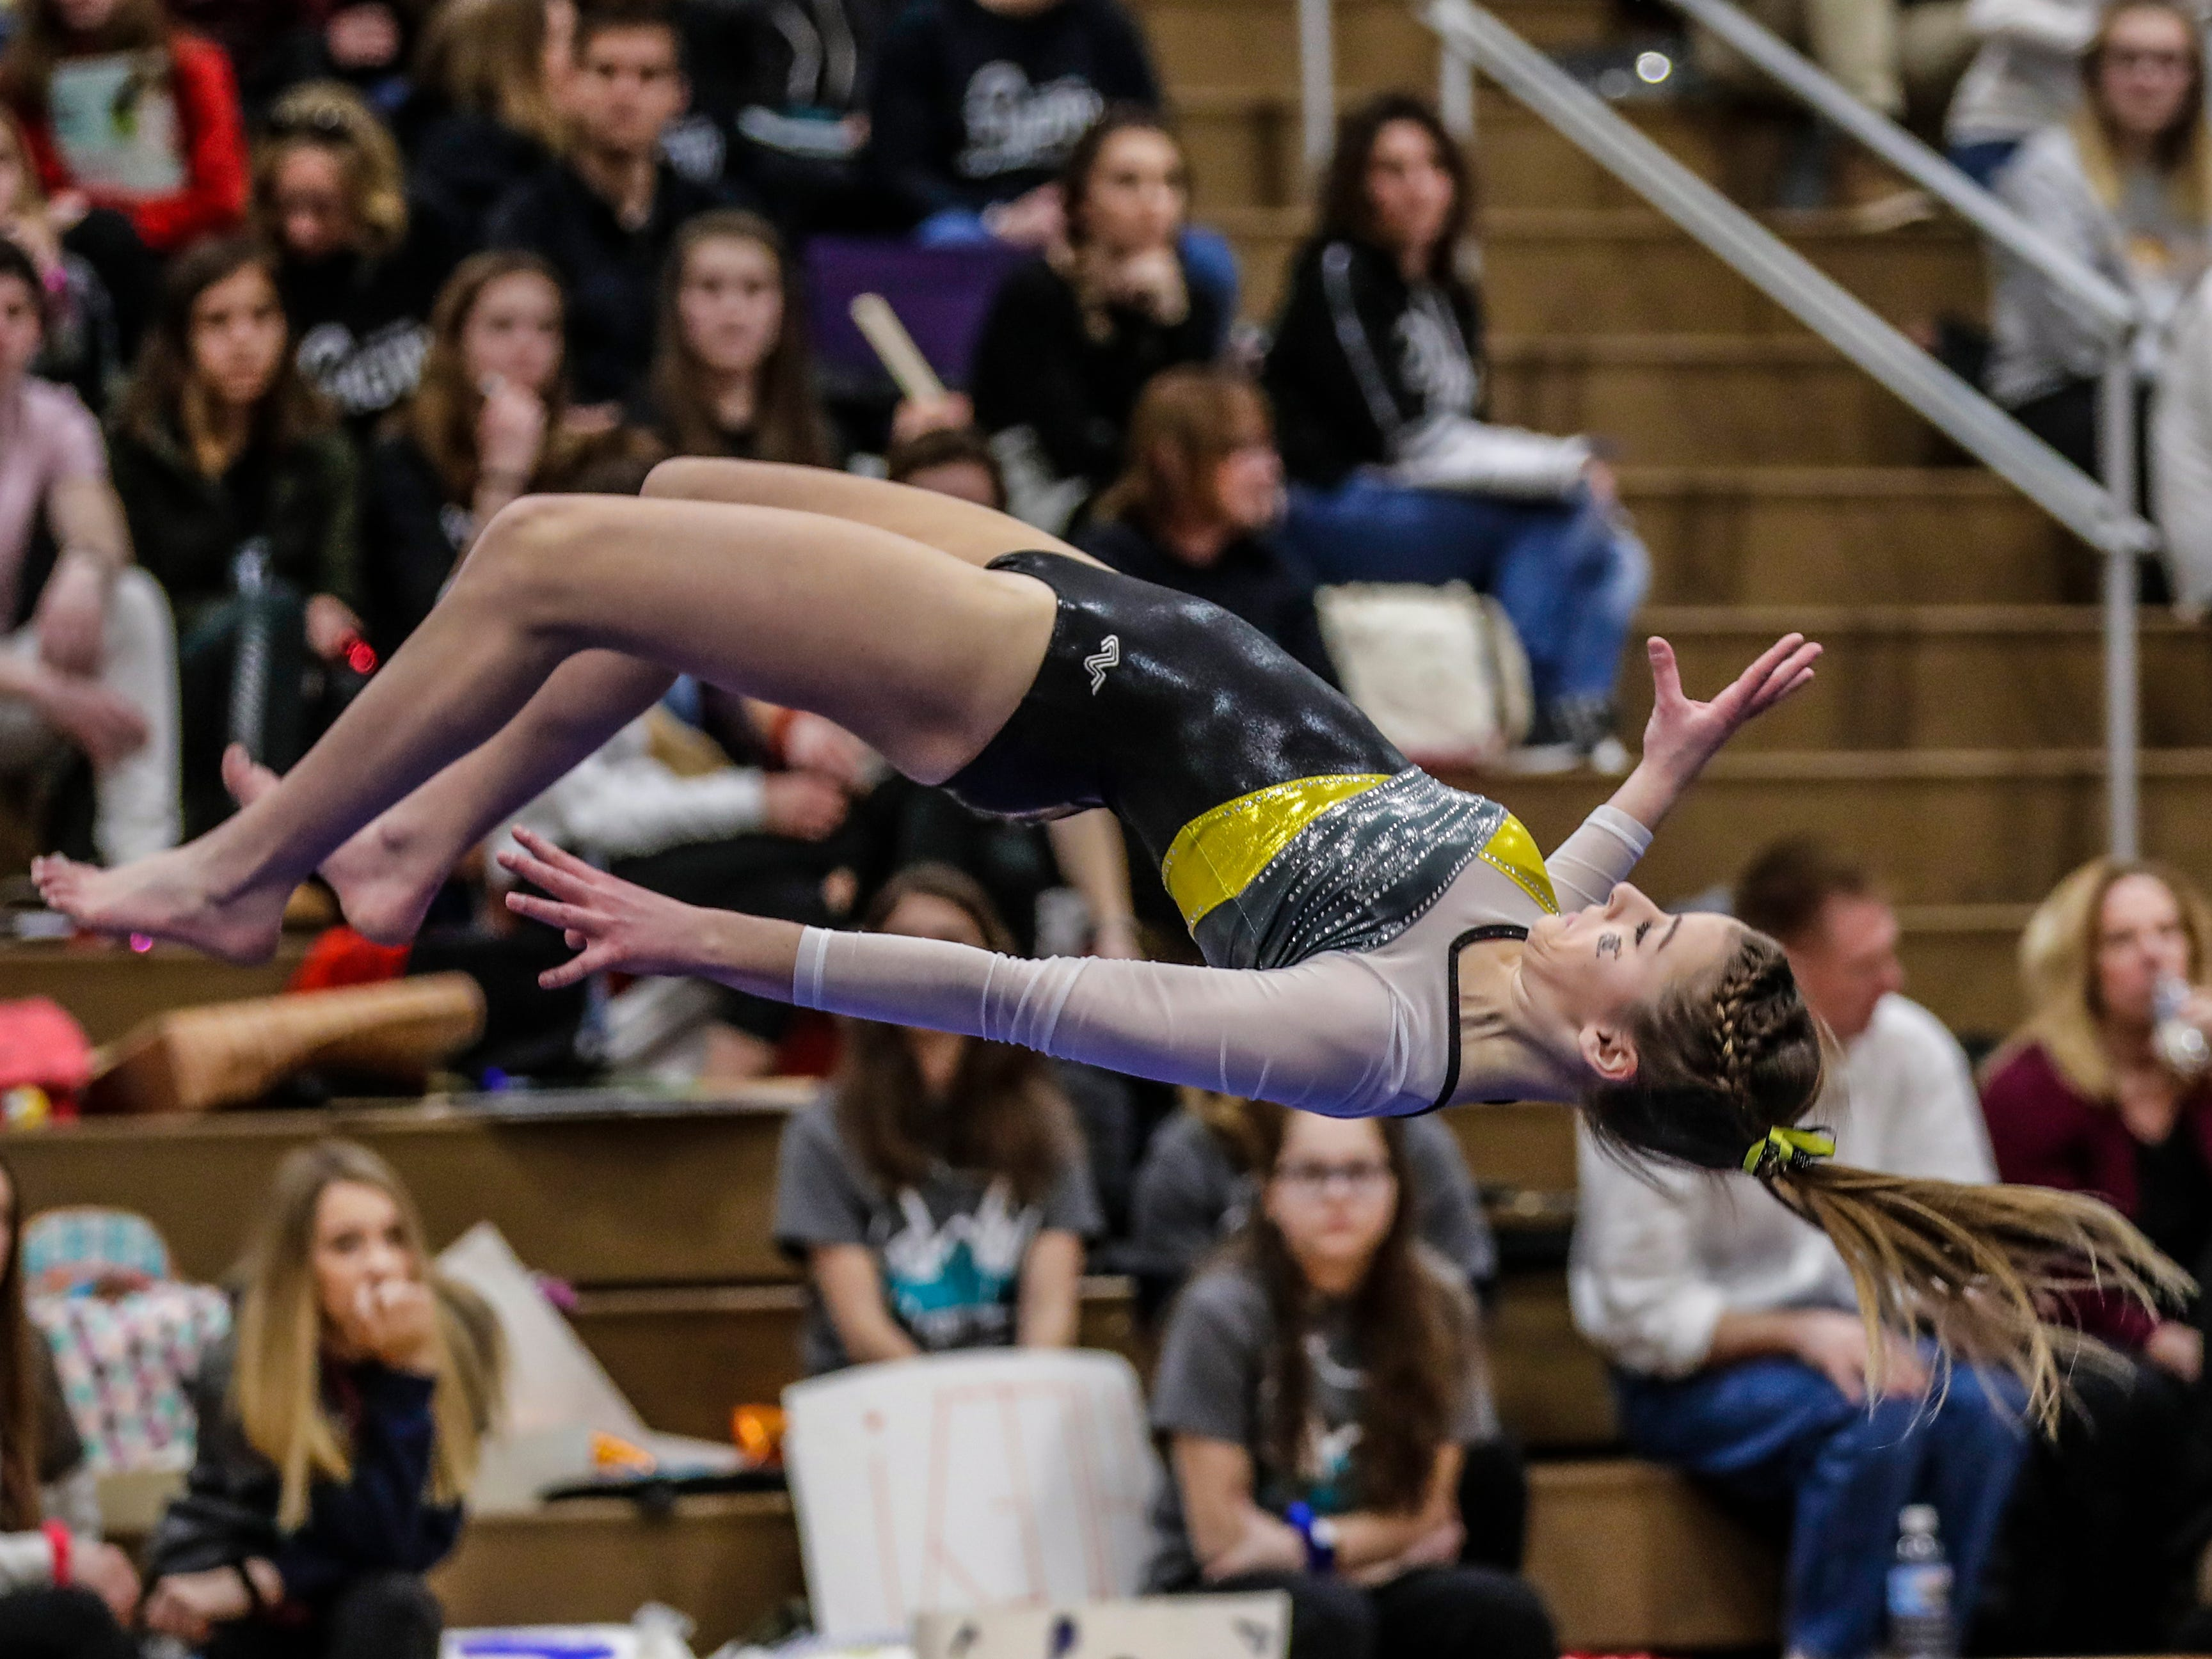 Waupun's Eryn Hautamaki competes in the floor exercise during WIAA state gymnastics competition Friday, March 1, 2019, at Lincoln High School Field House in Wisconsin Rapids, Wis. T'xer Zhon Kha/USA TODAY NETWORK-Wisconsin